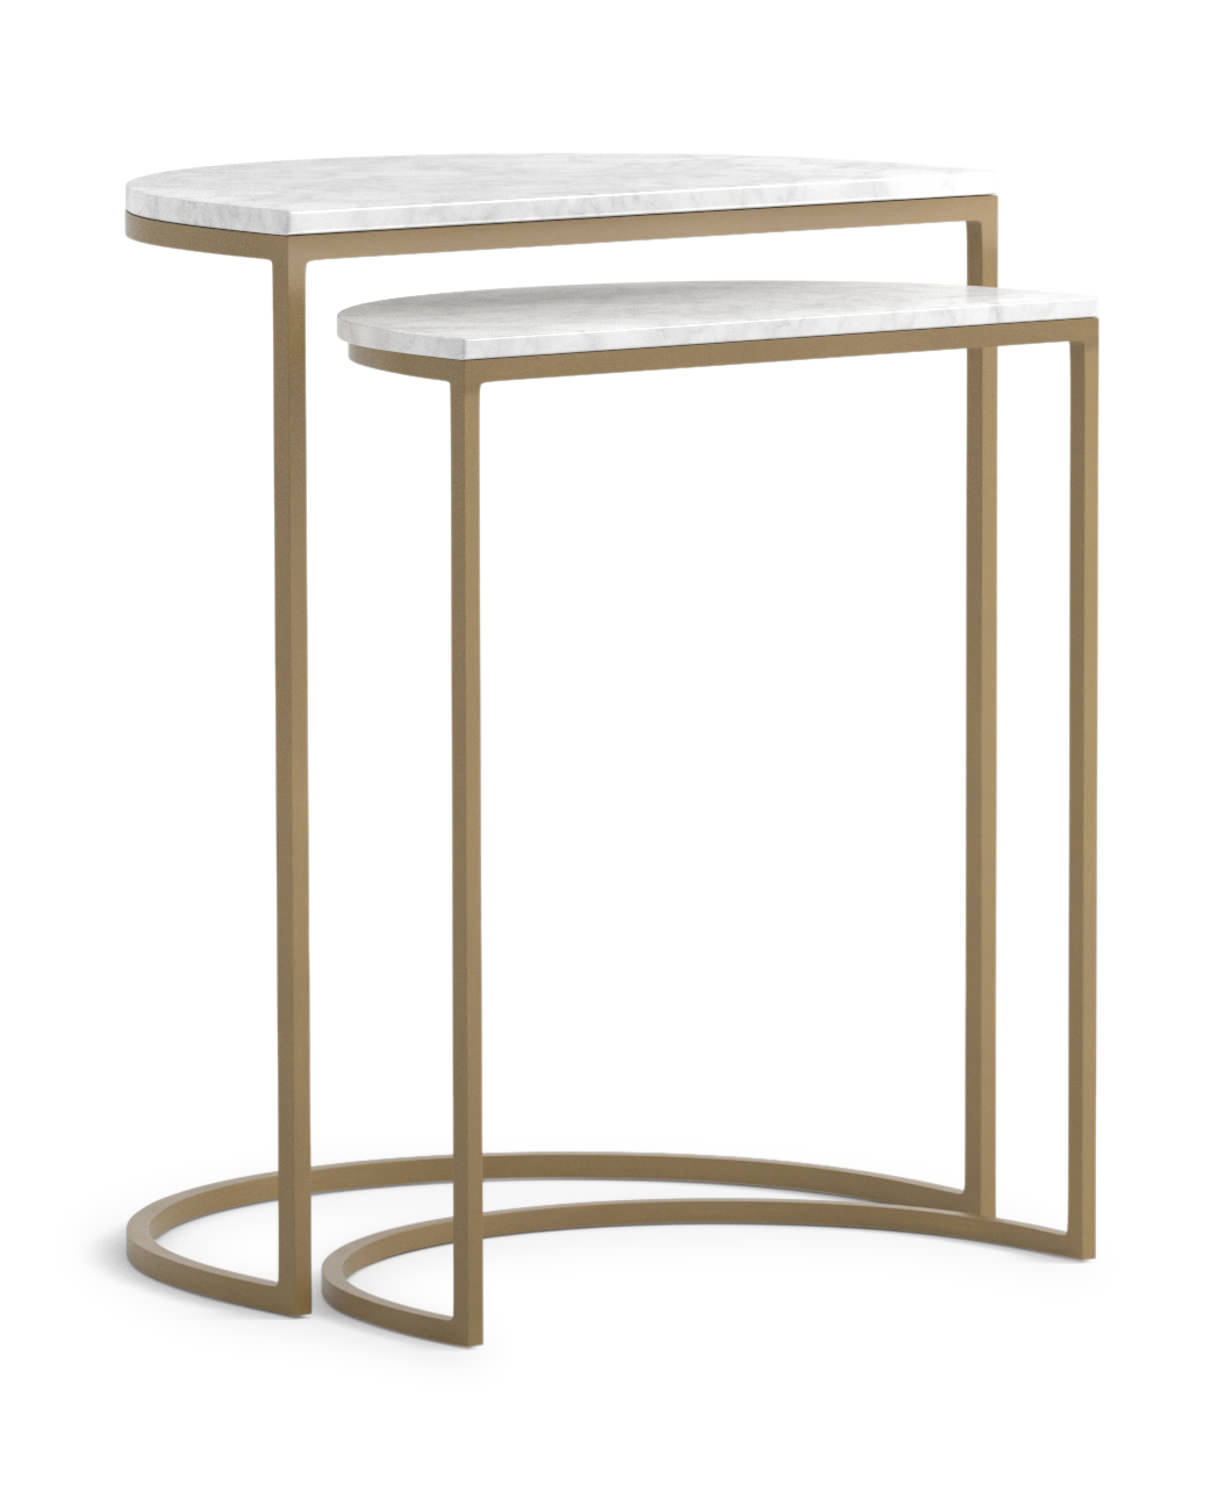 Ane nesting tables gabberts ane nesting tables watchthetrailerfo